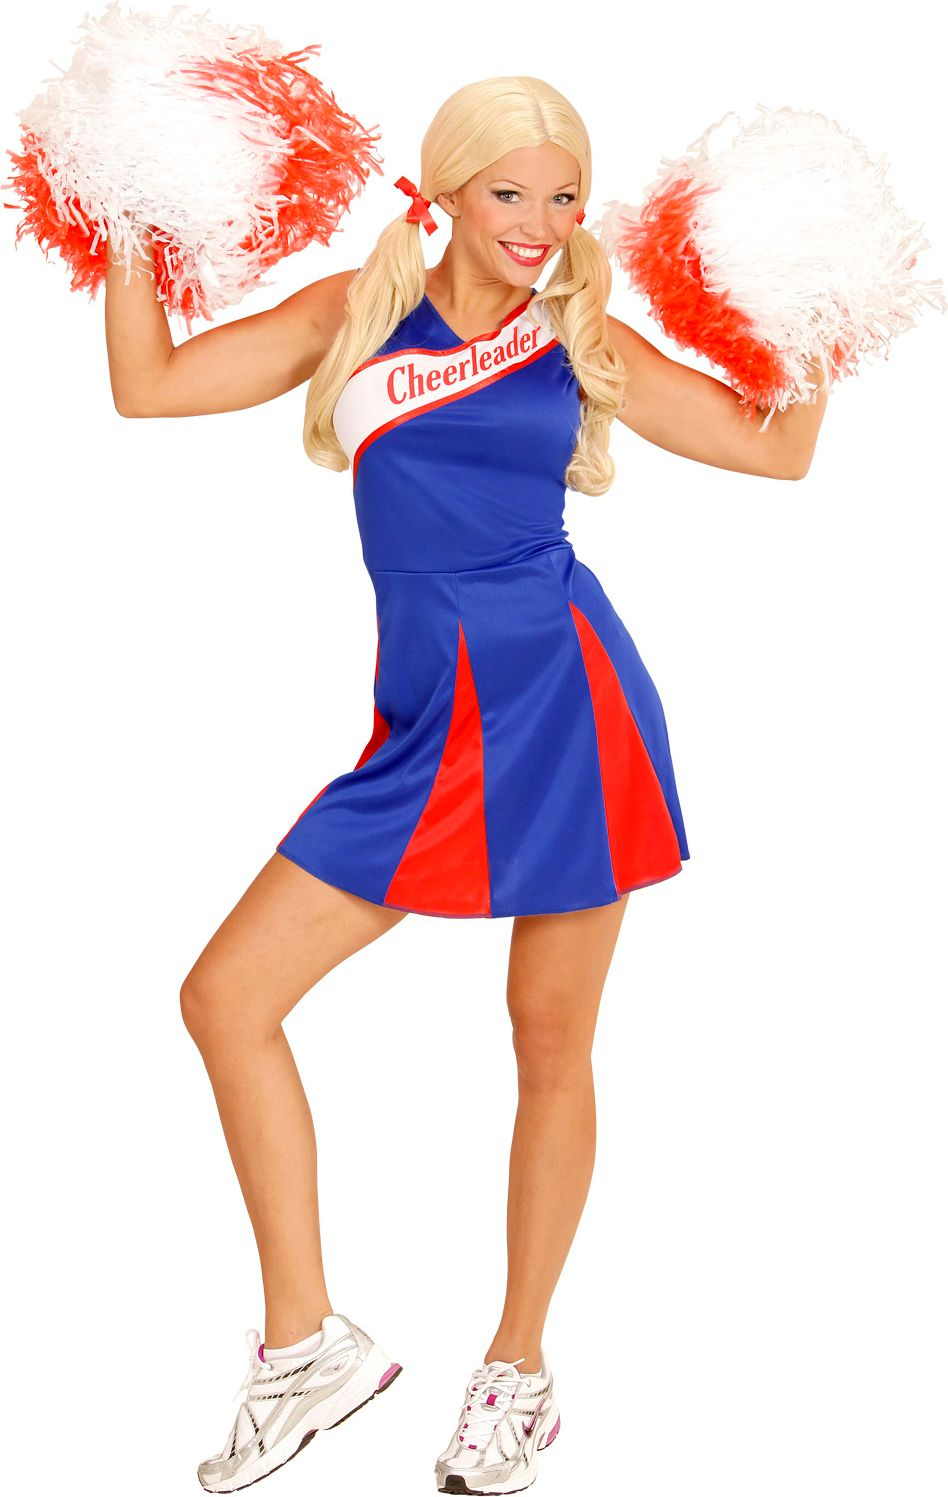 Cheerleader outfit dames